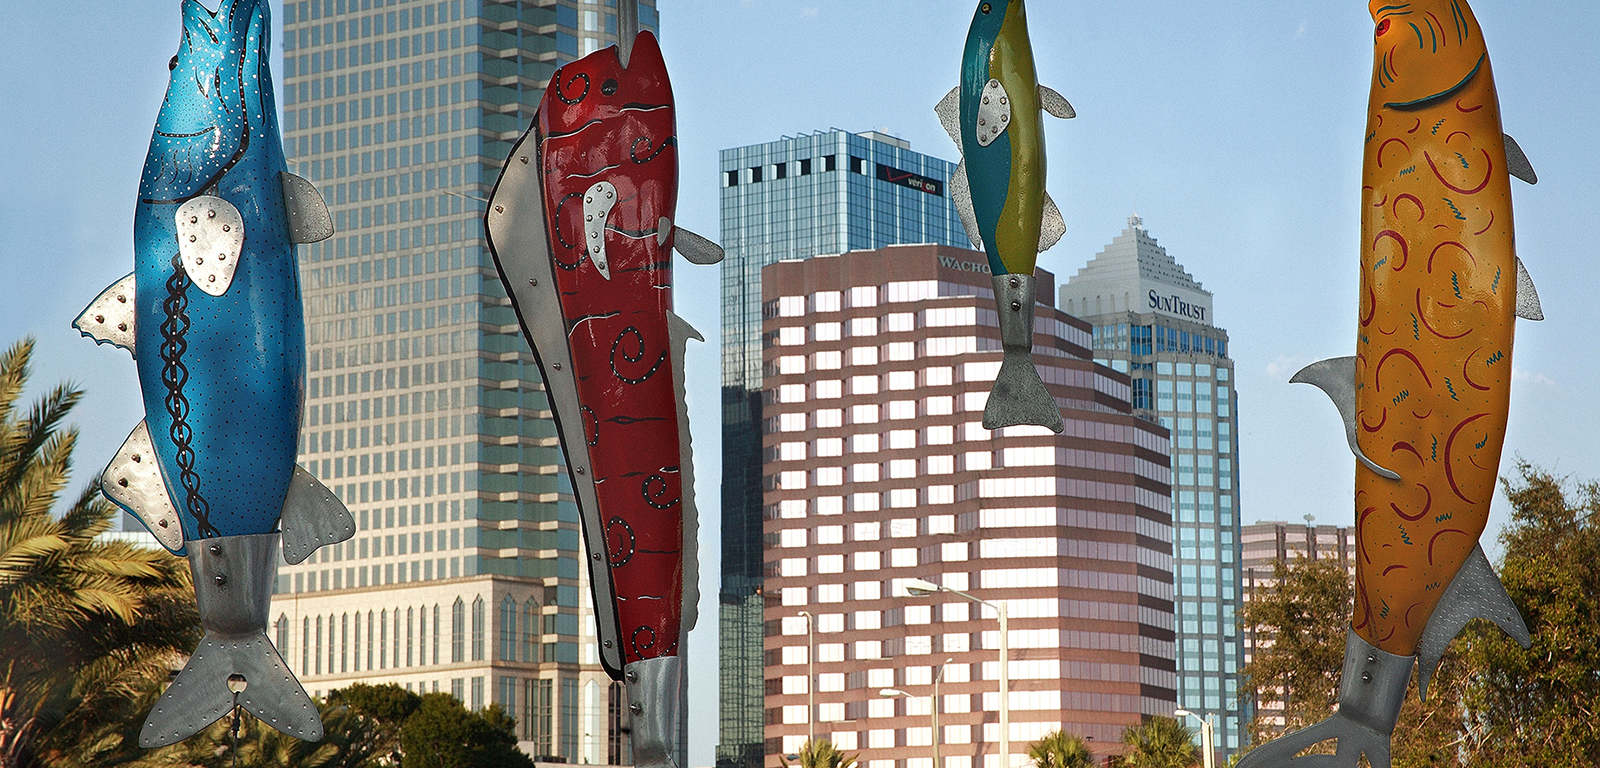 Fish on Bayshore , Lorraine Genovar & Wayne Fernandez   Photo Credit, Ron Williams   Initially commissioned by the City of Tampa Public Art Program in 1995, the popular and recognizable  Fish on Bayshore  was showing wear and tear, so the F. E. Lykes Foundation funded a restoration, in 2004, to brighten and update this favorite landmark.